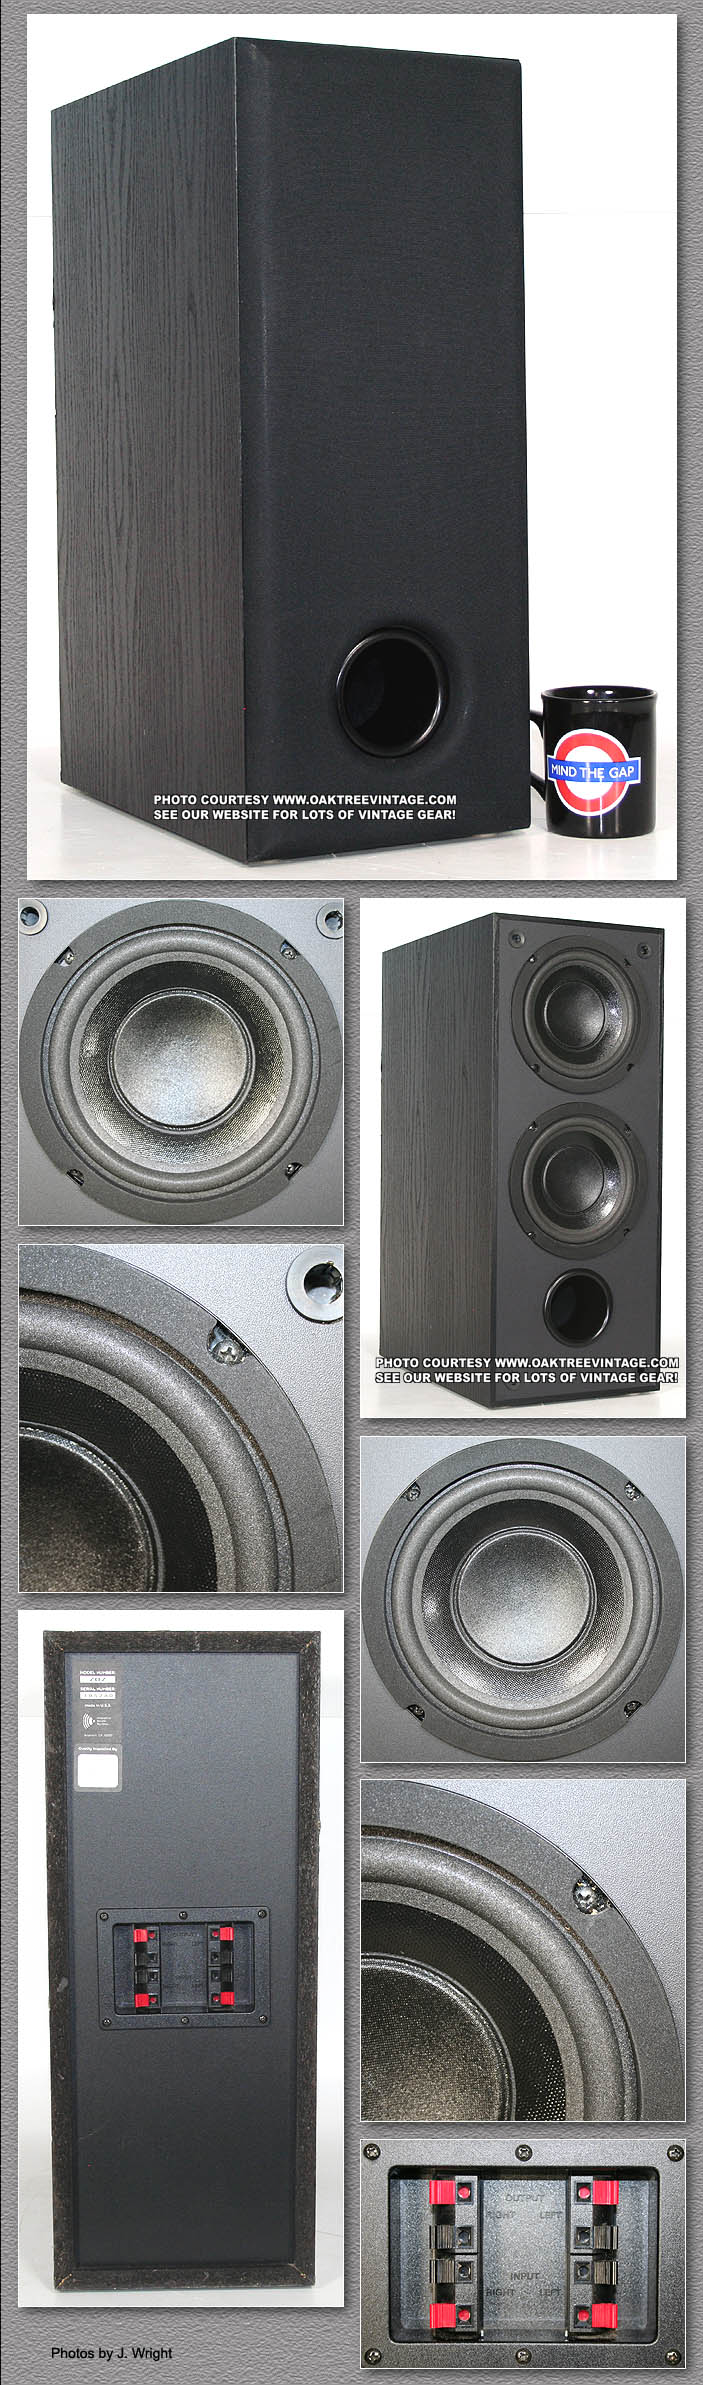 Used / Vintage stereo replacement speaker parts